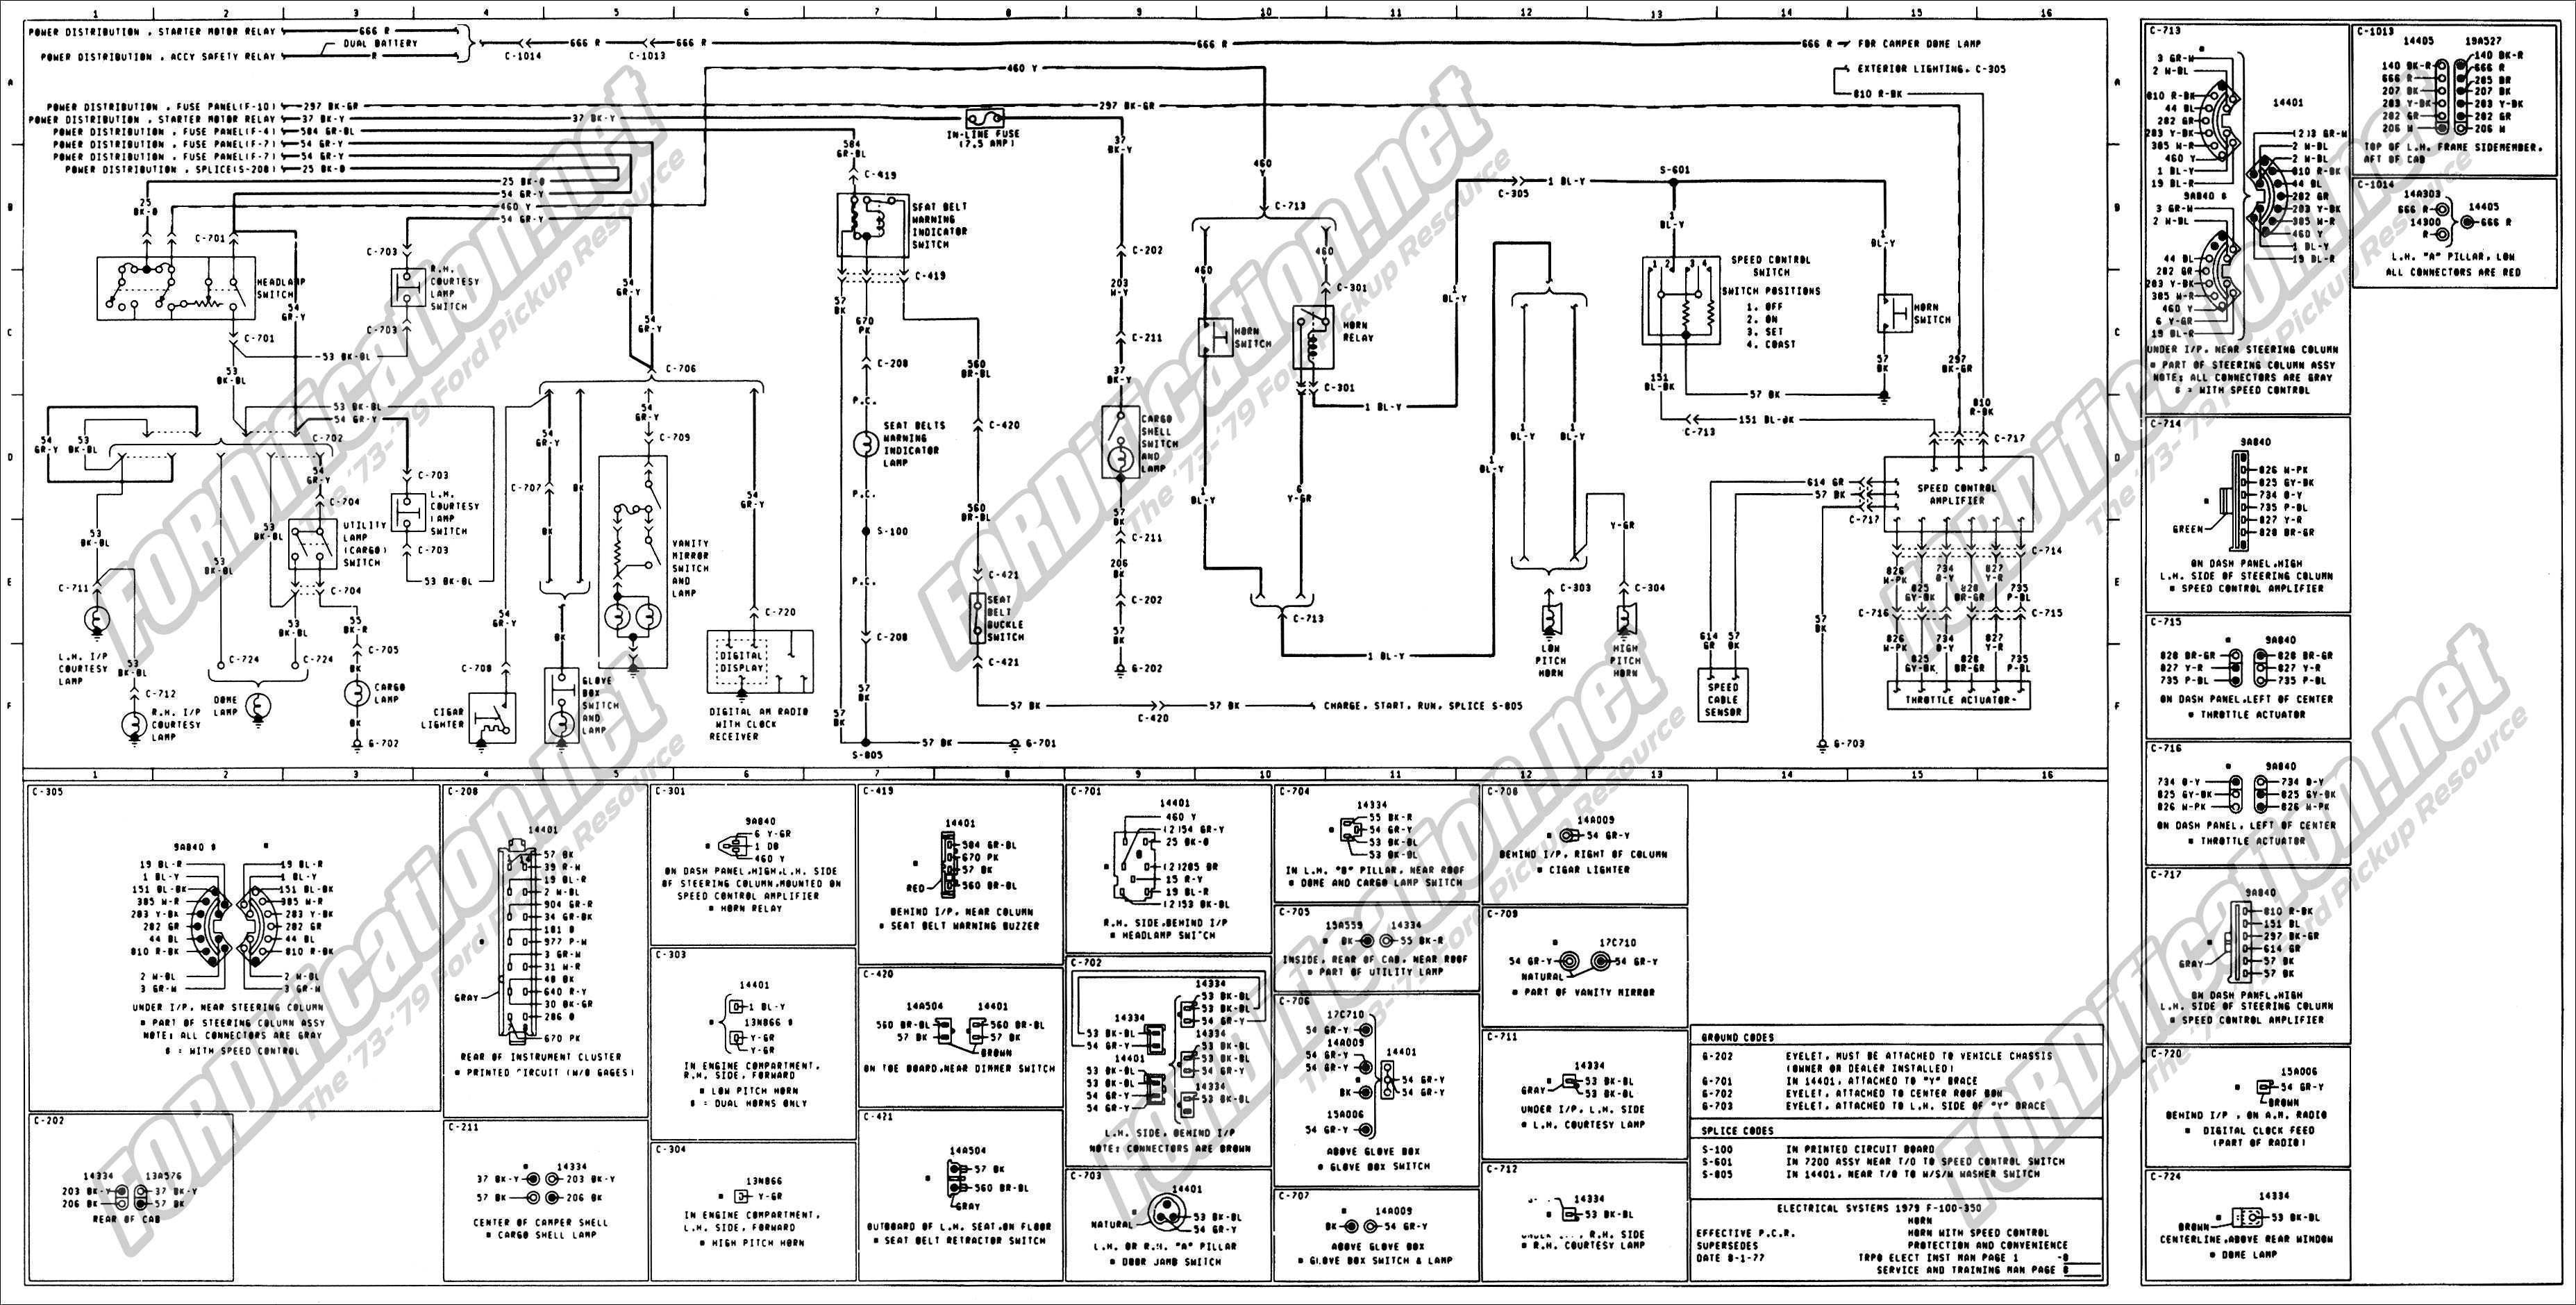 97 Ford F 350 Solenoid Wiring - All Diagram Schematics K Amp R Wiring Diagram on